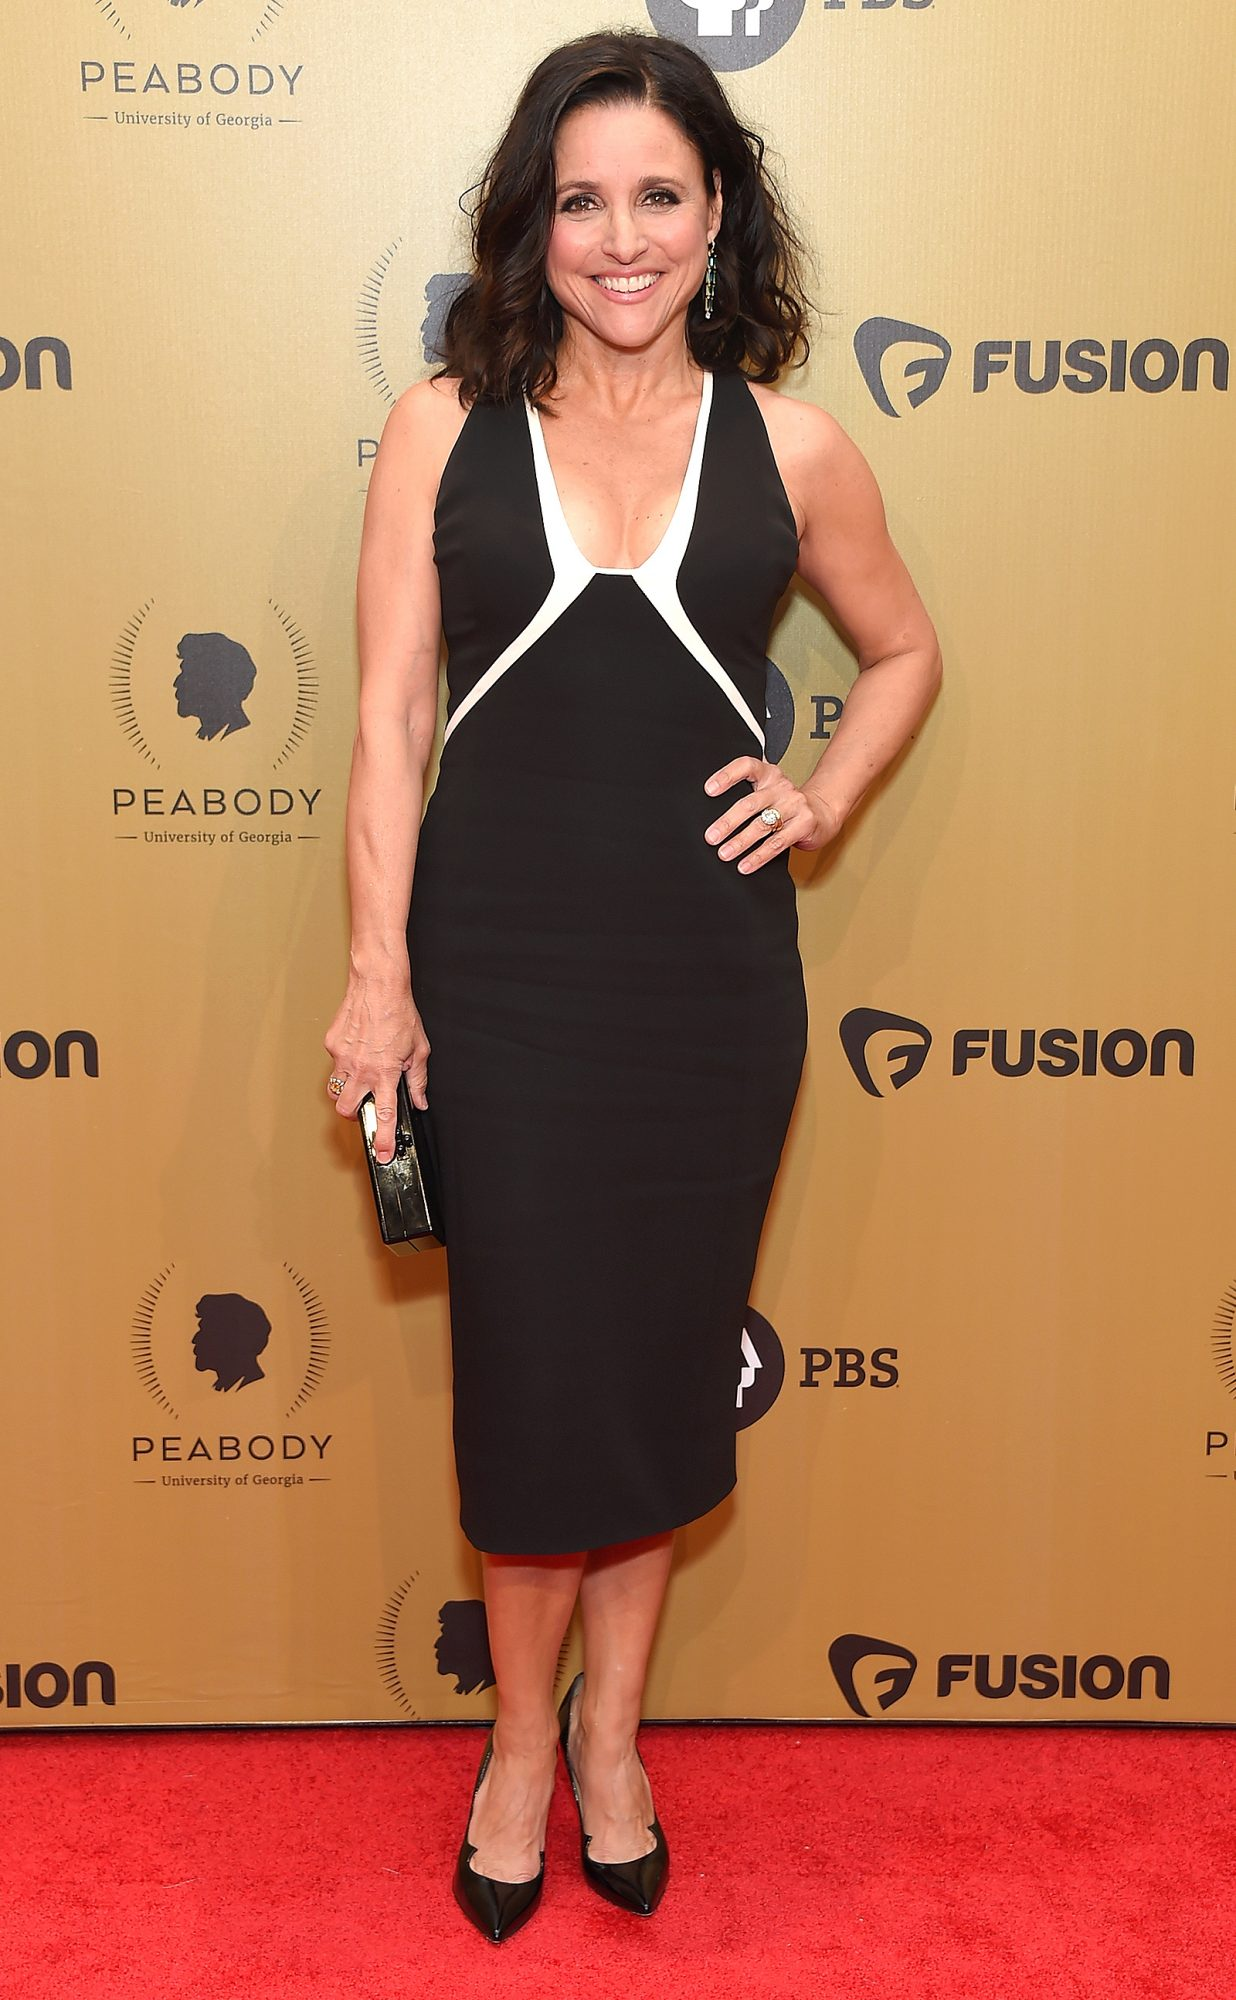 The 76th Annual Peabody Awards Ceremony - Arrivals